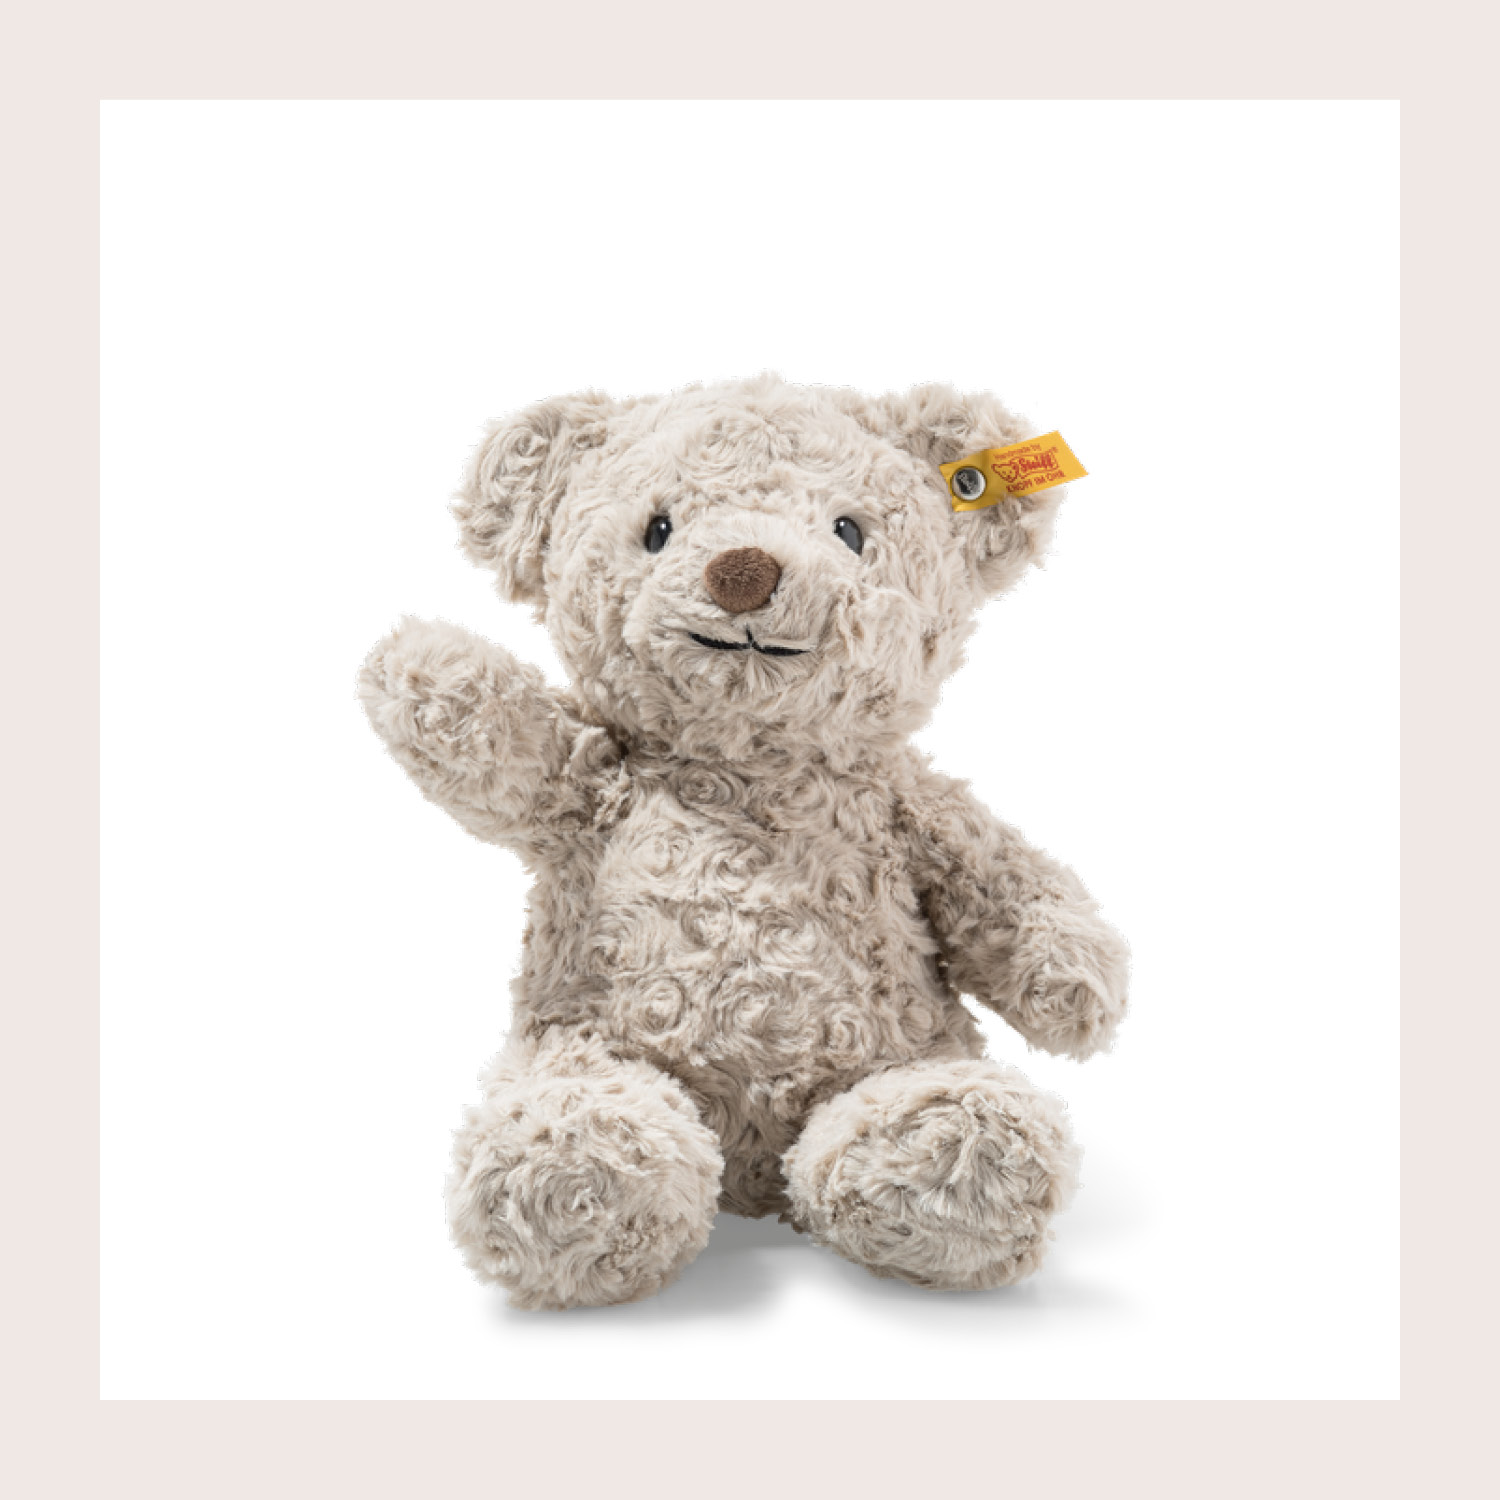 Honey X 1 Teddy 28cm